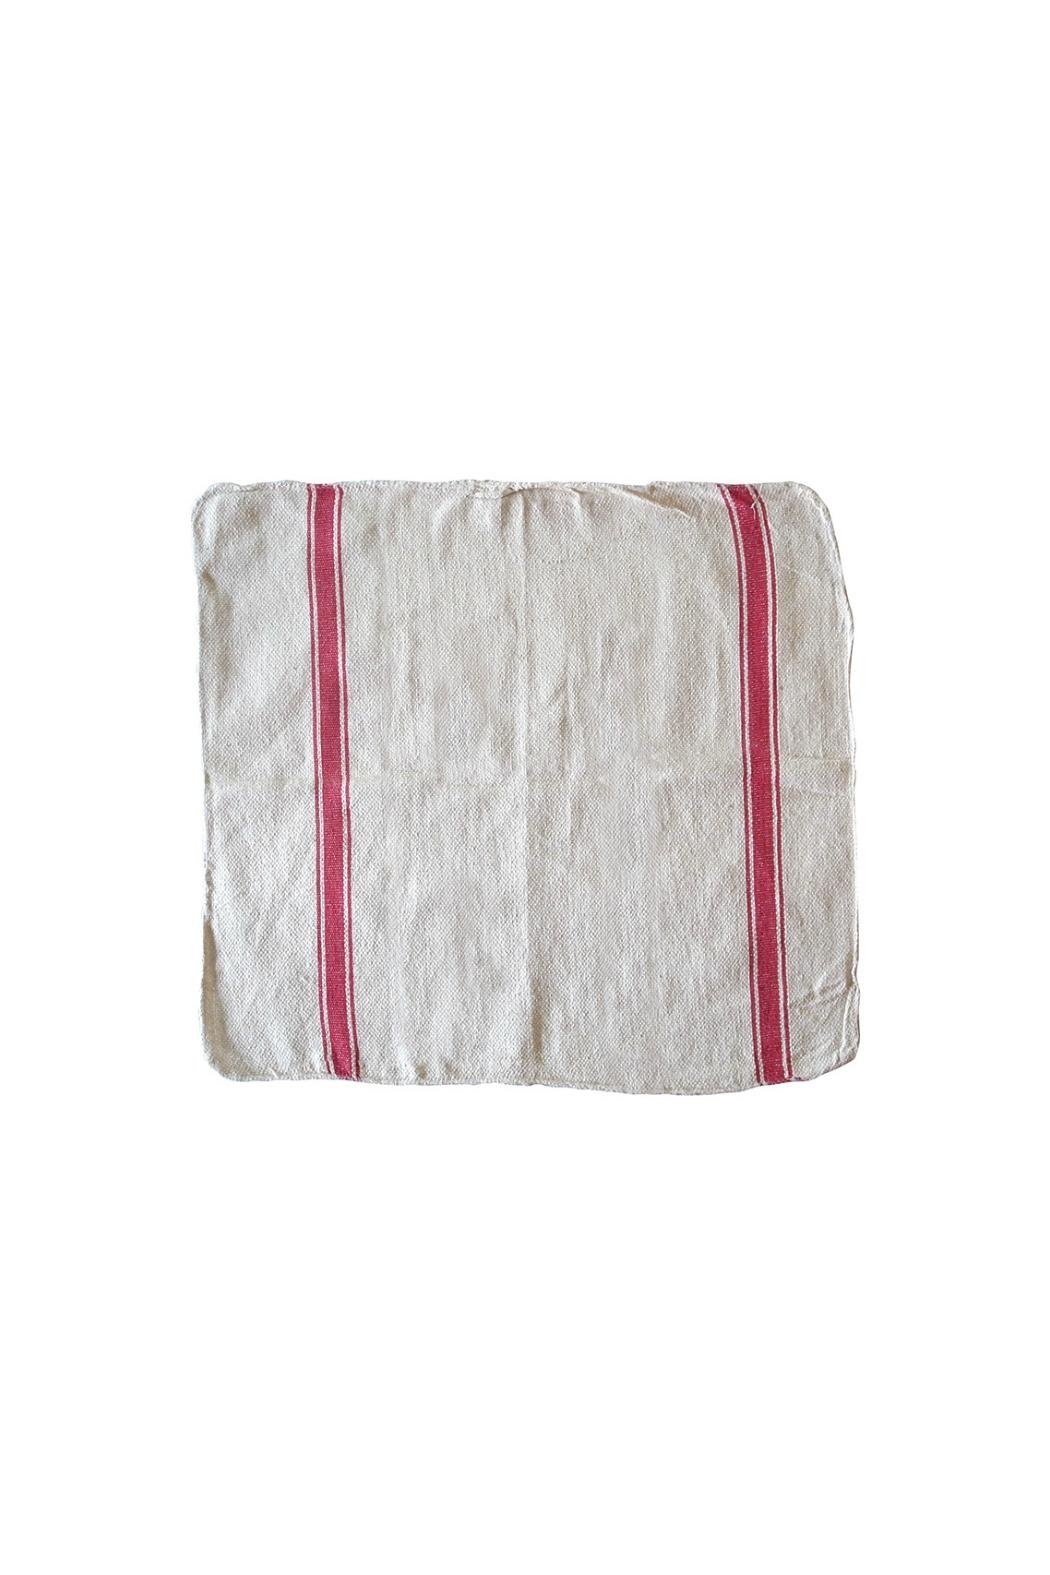 PUEBCO Red-Striped Dish Towel - Main Image